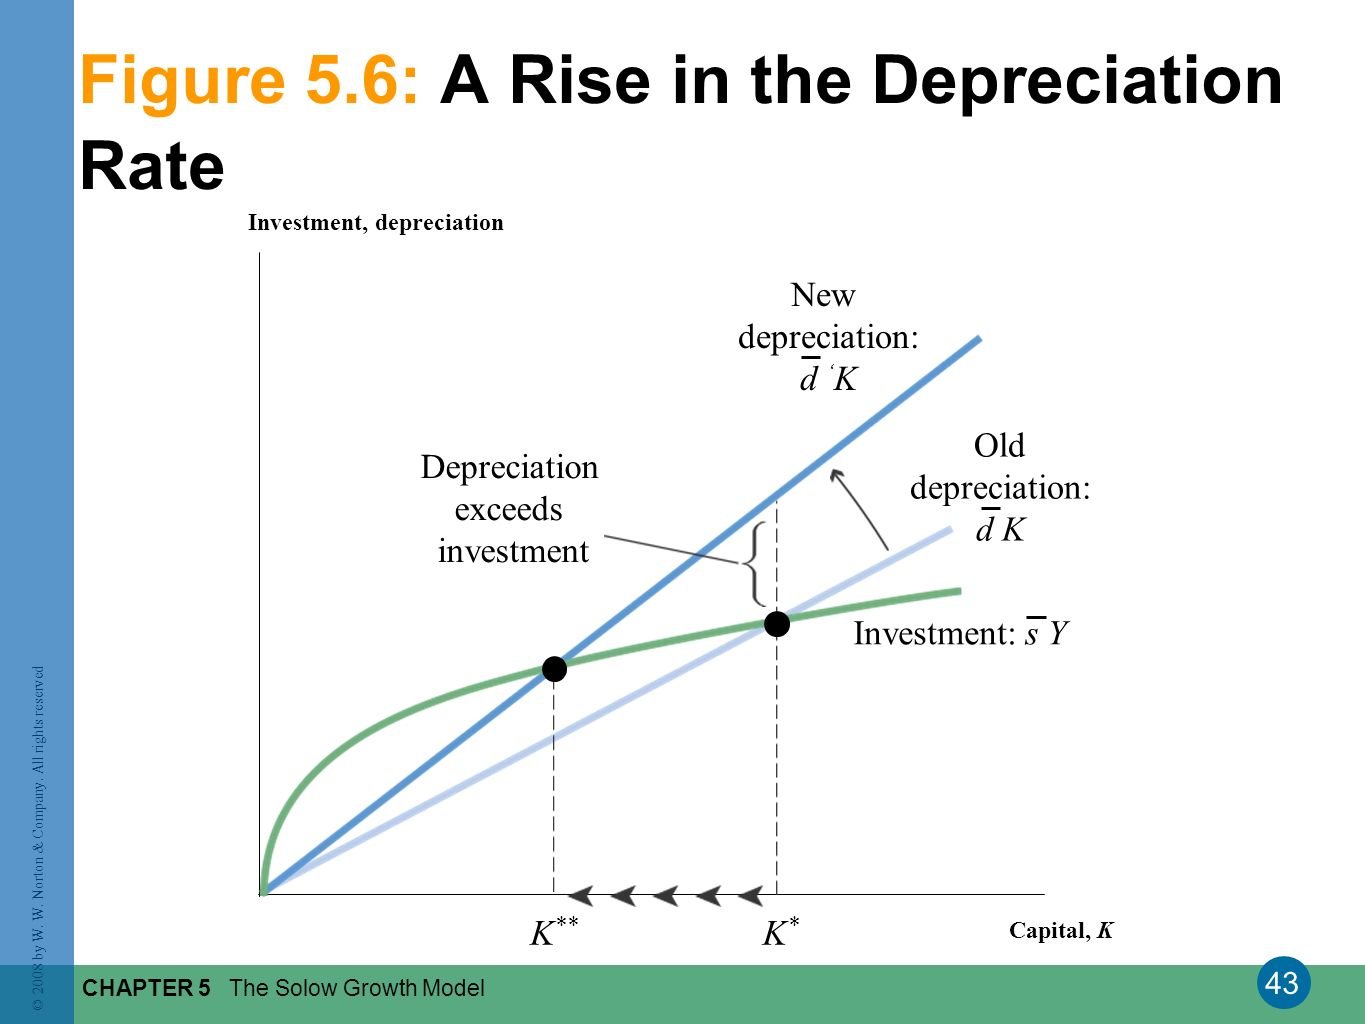 43 © 2008 by W. W. Norton & Company. All rights reserved CHAPTER 5 The Solow Growth Model Figure 5.6: A Rise in the Depreciation Rate Investment, depr